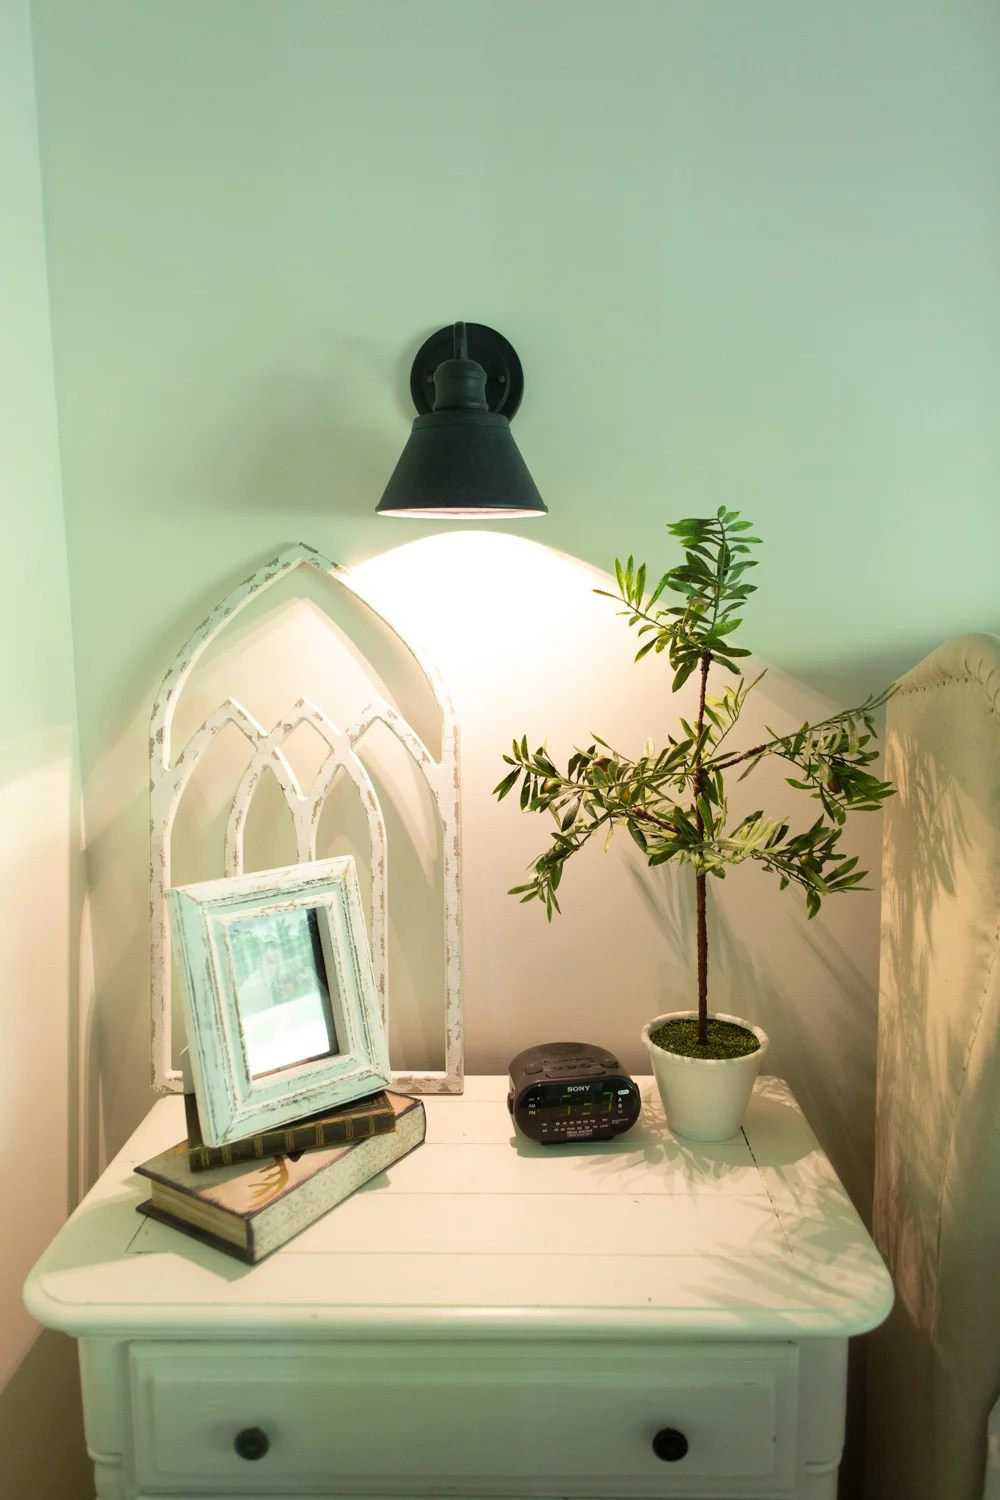 DIY Wall Sconce Lighting without Electricity or Power ... on Sconces No Electric Power id=97171